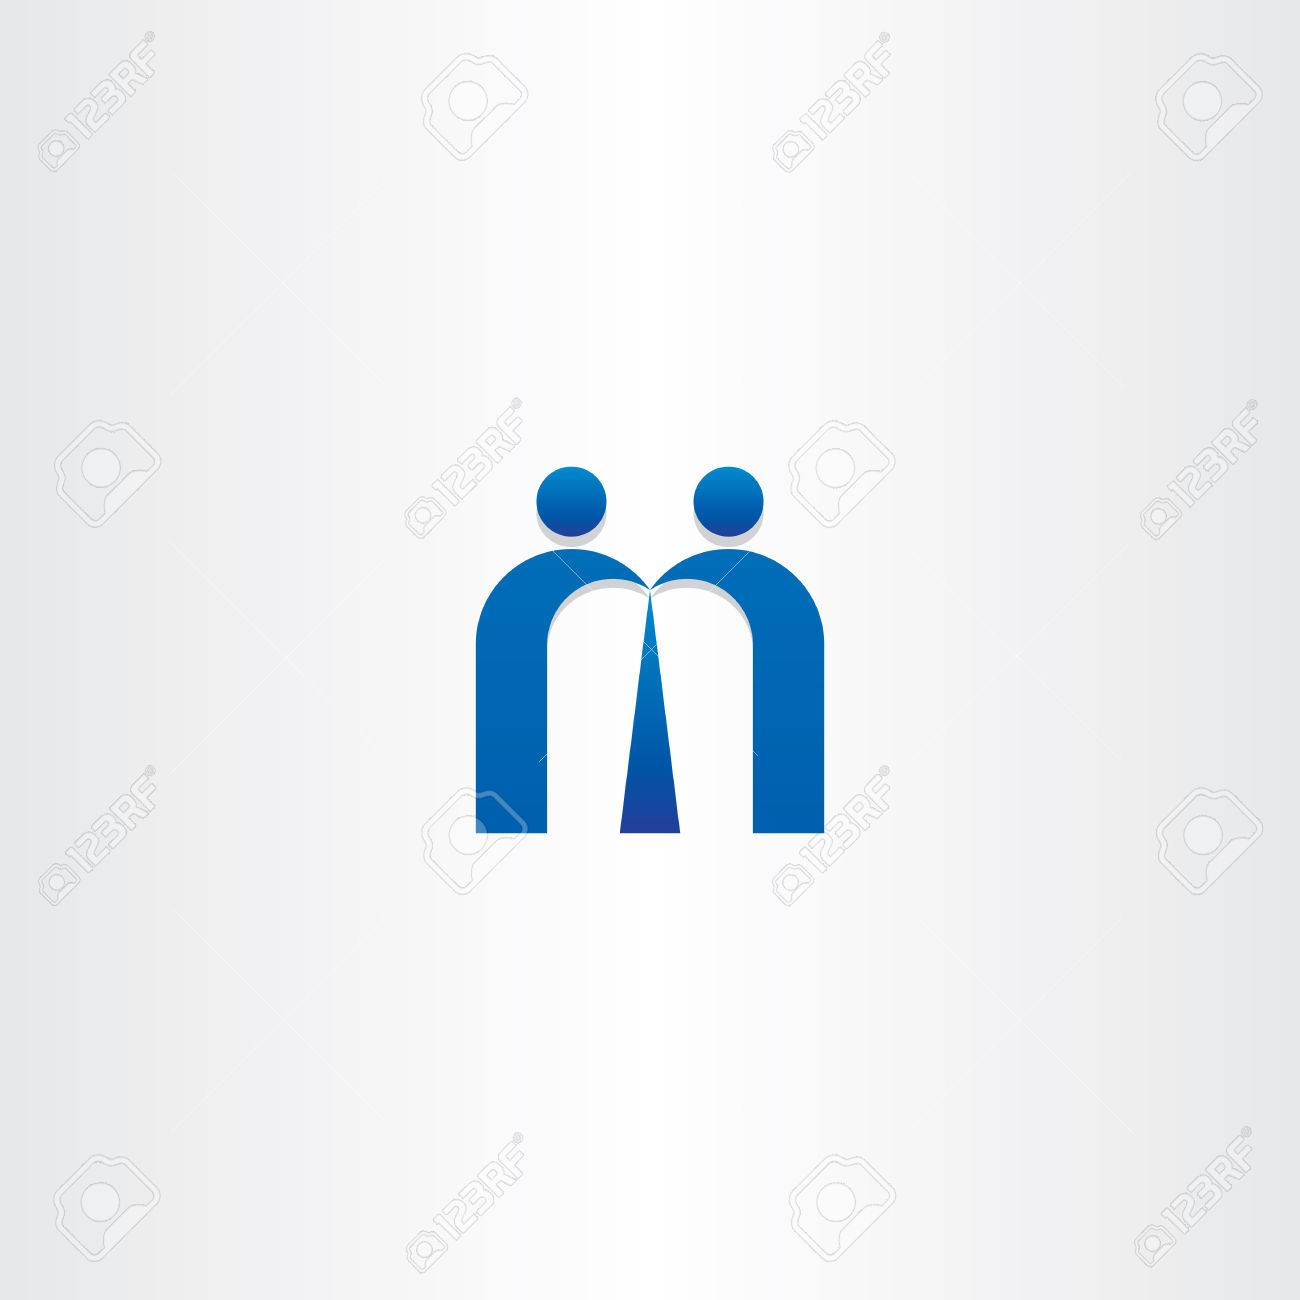 Blue Letter M People Business Icon Design Royalty Free Cliparts